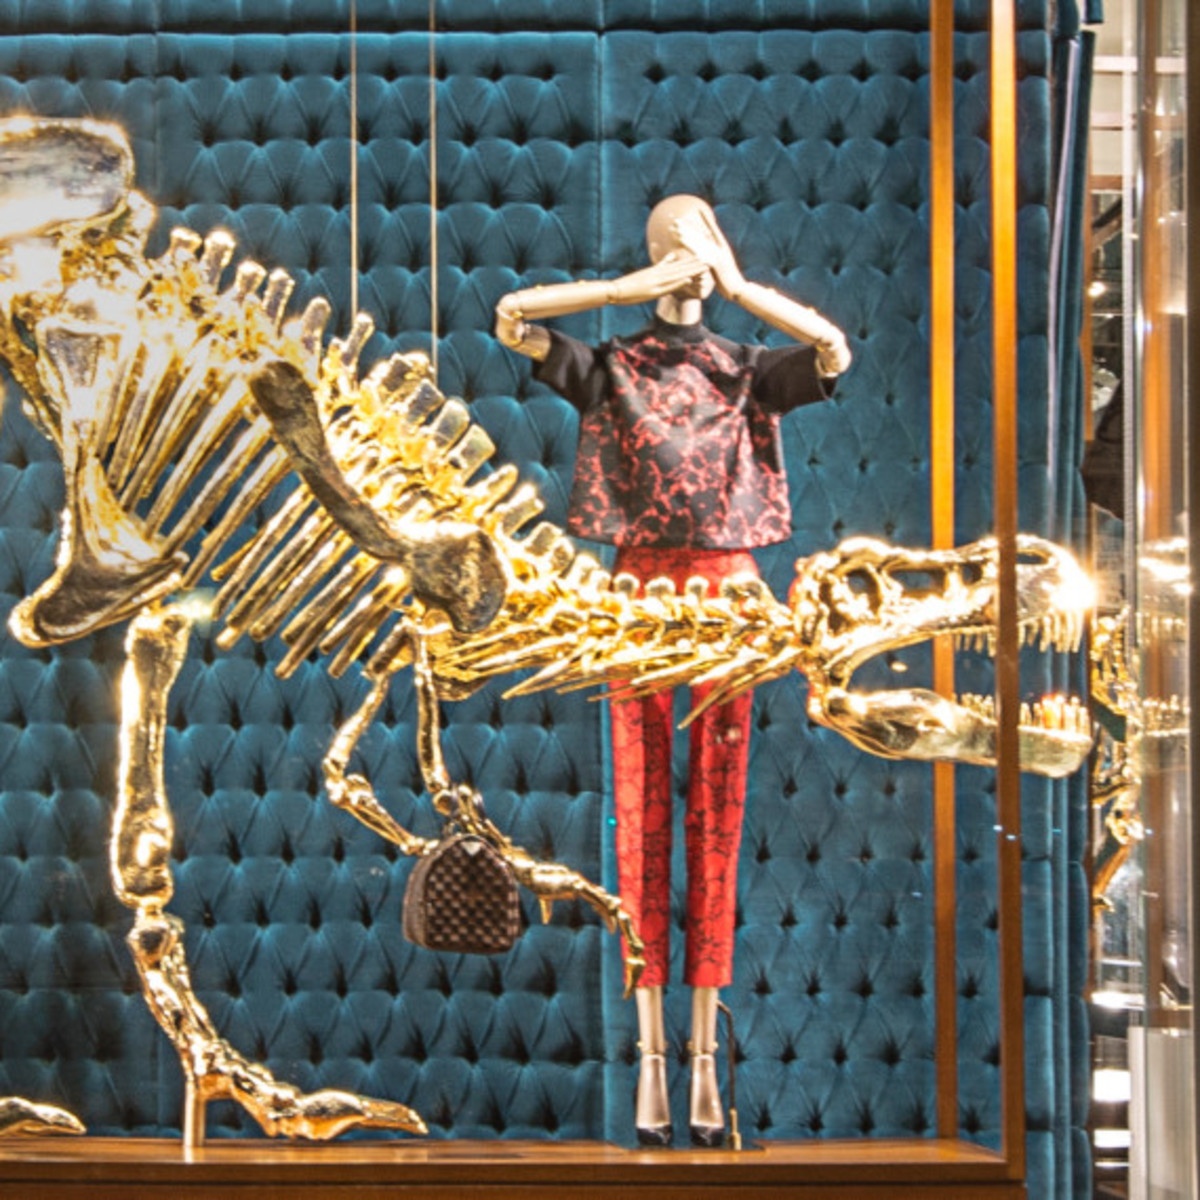 Dinosaurs Invade Louis Vuitton's 5th Avenue Maison Windows | NYC - 4